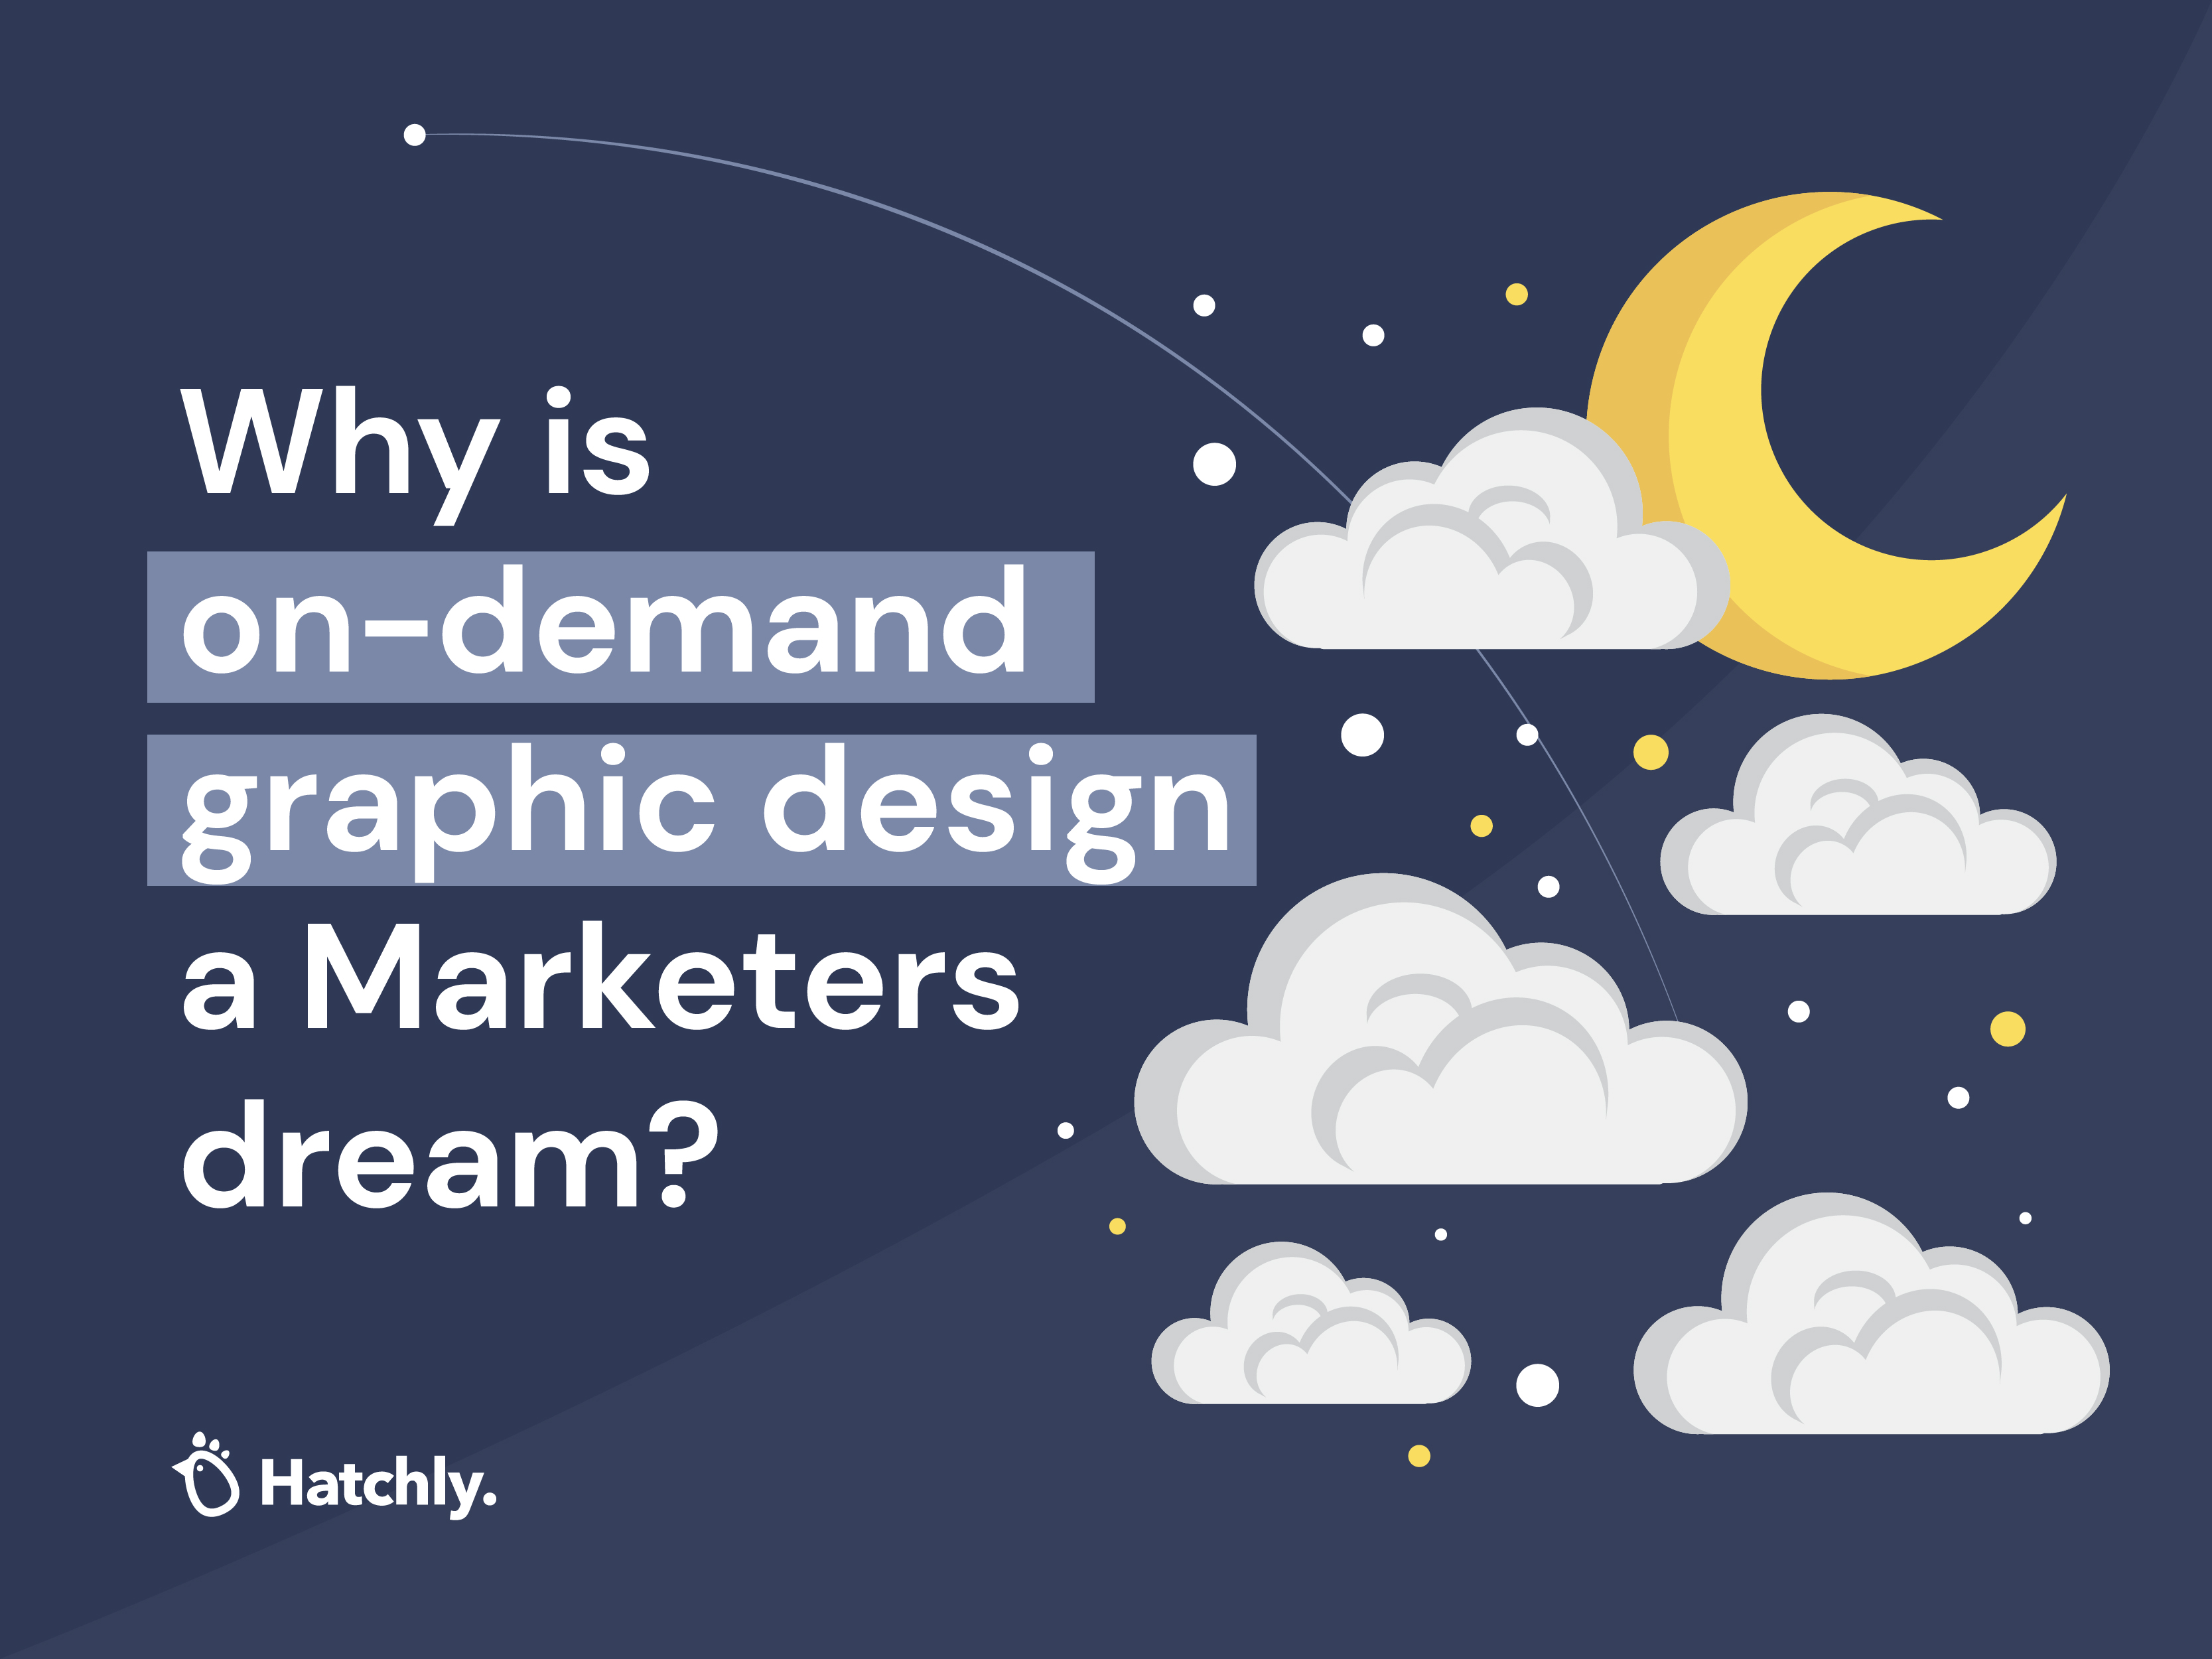 Why is on-demand graphic design a Marketers dream?